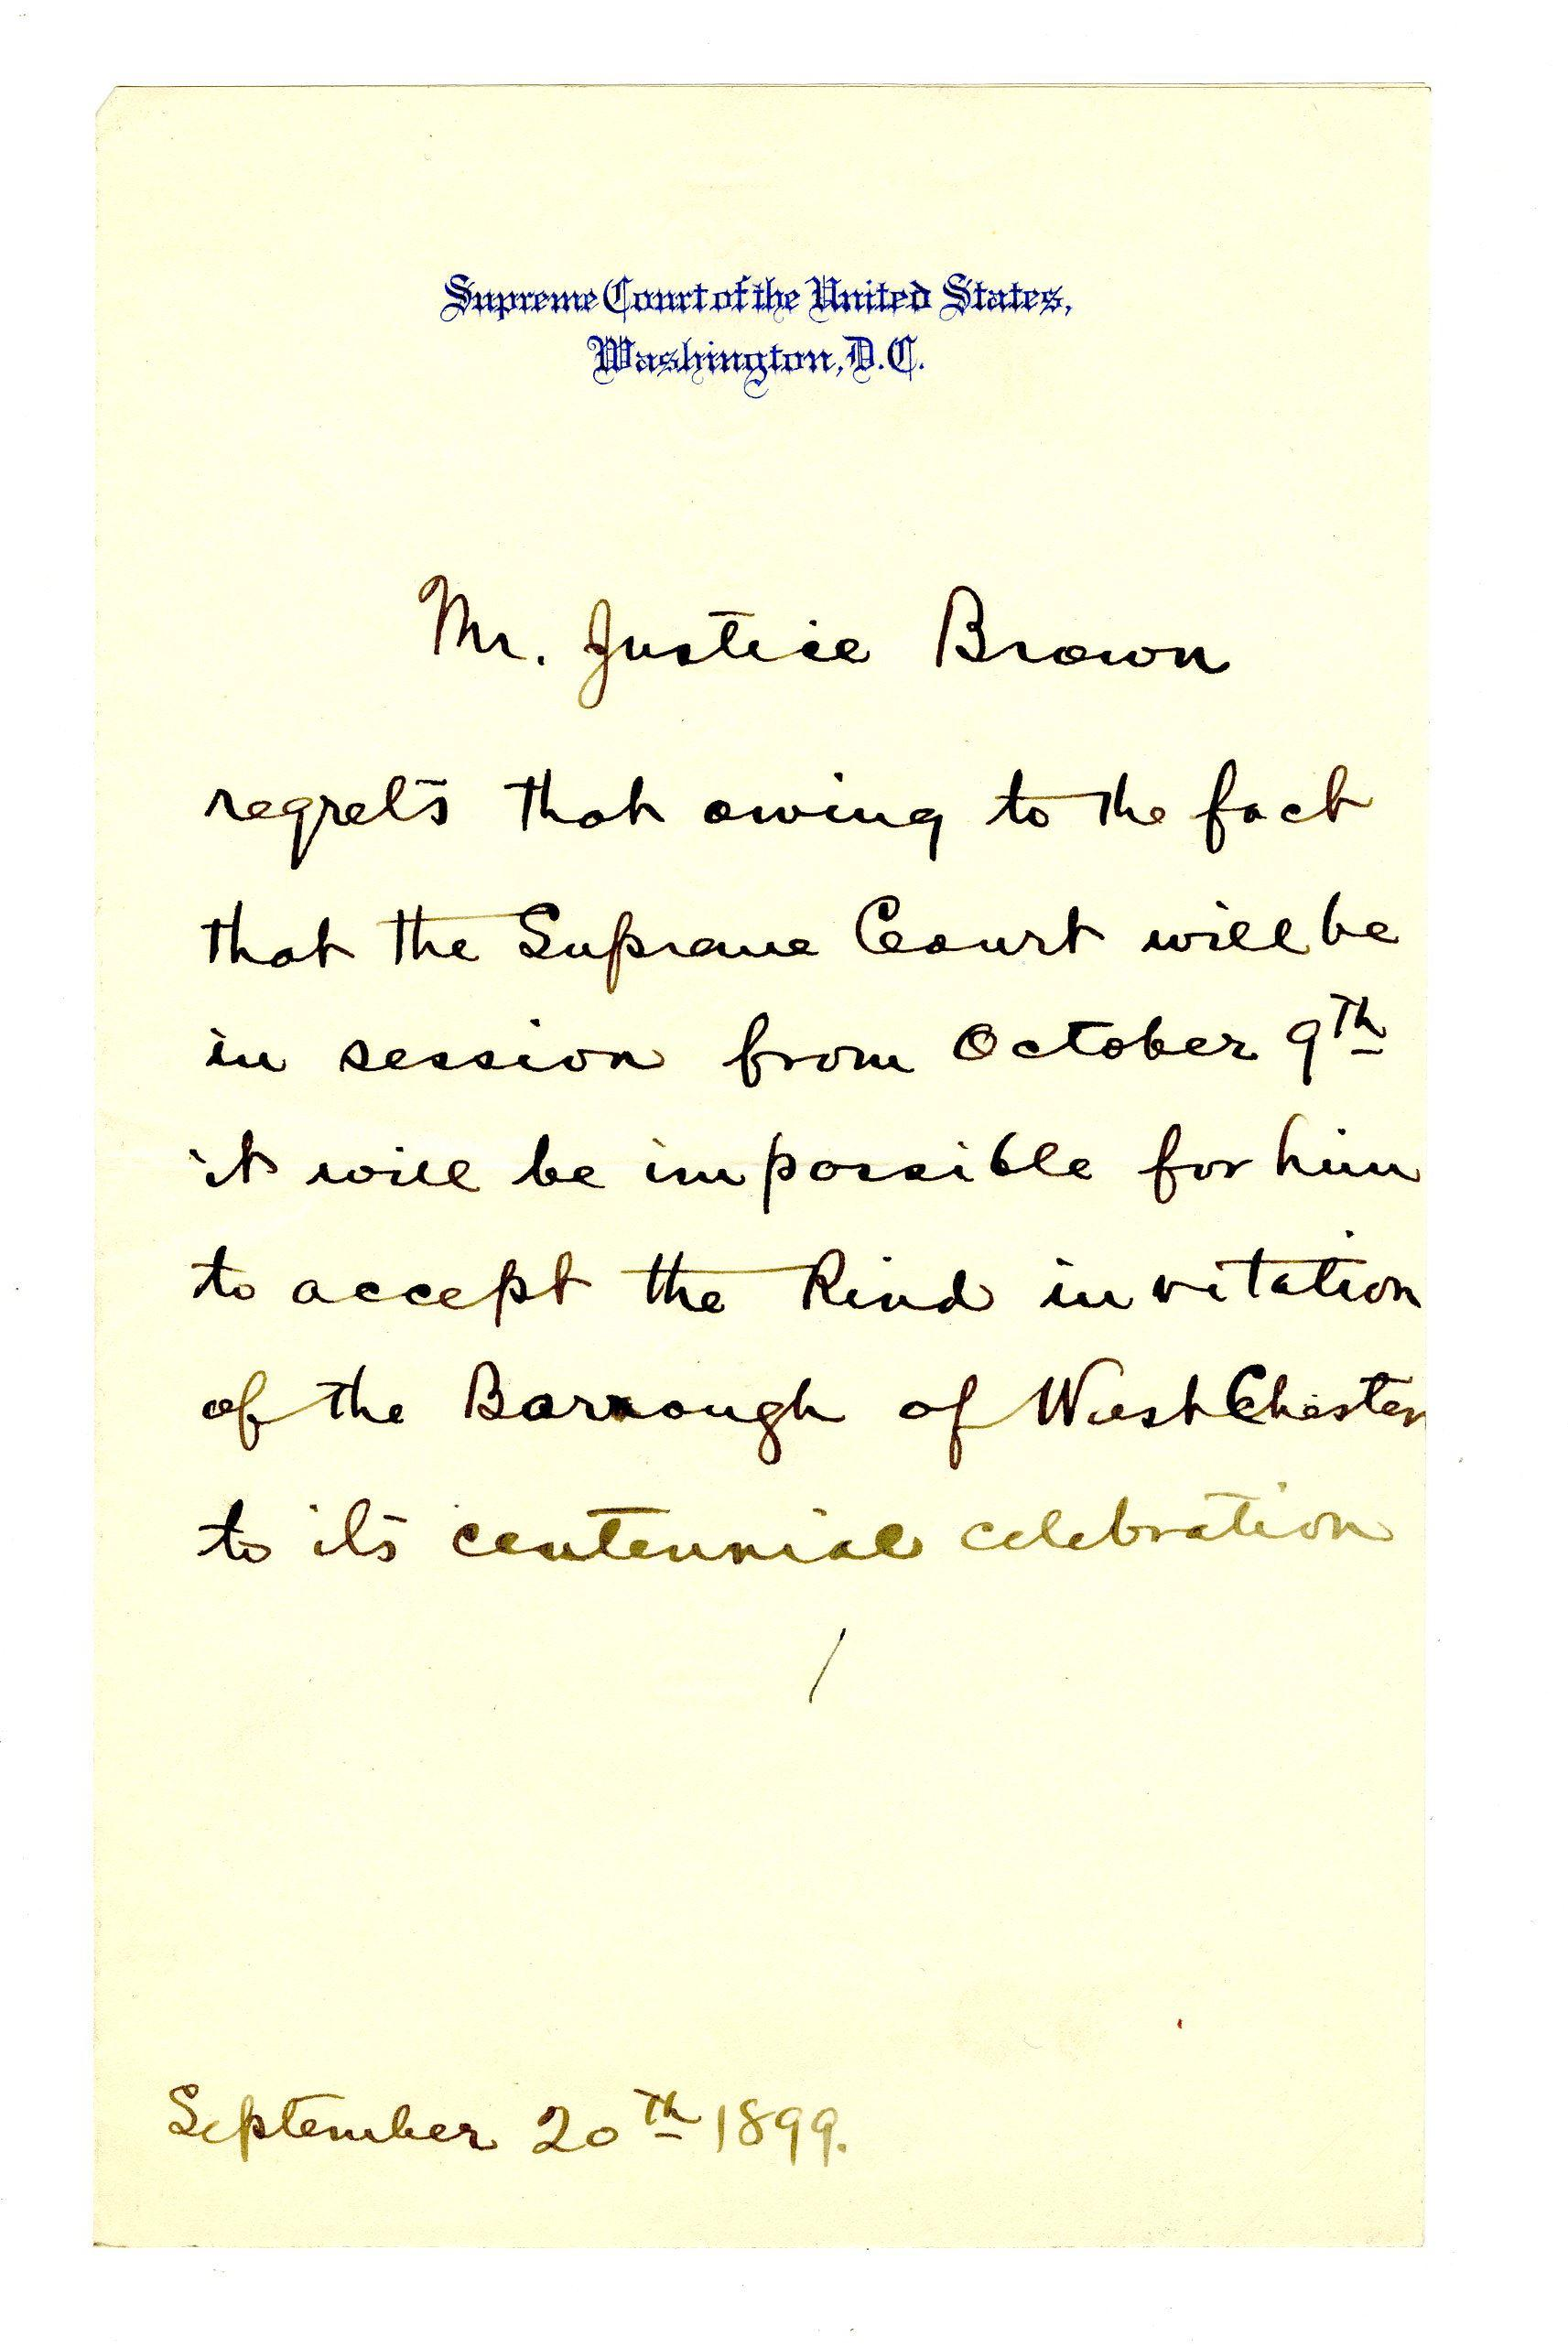 Letter Written on Behalf of Justice Henry Brown, Declining an Invitation